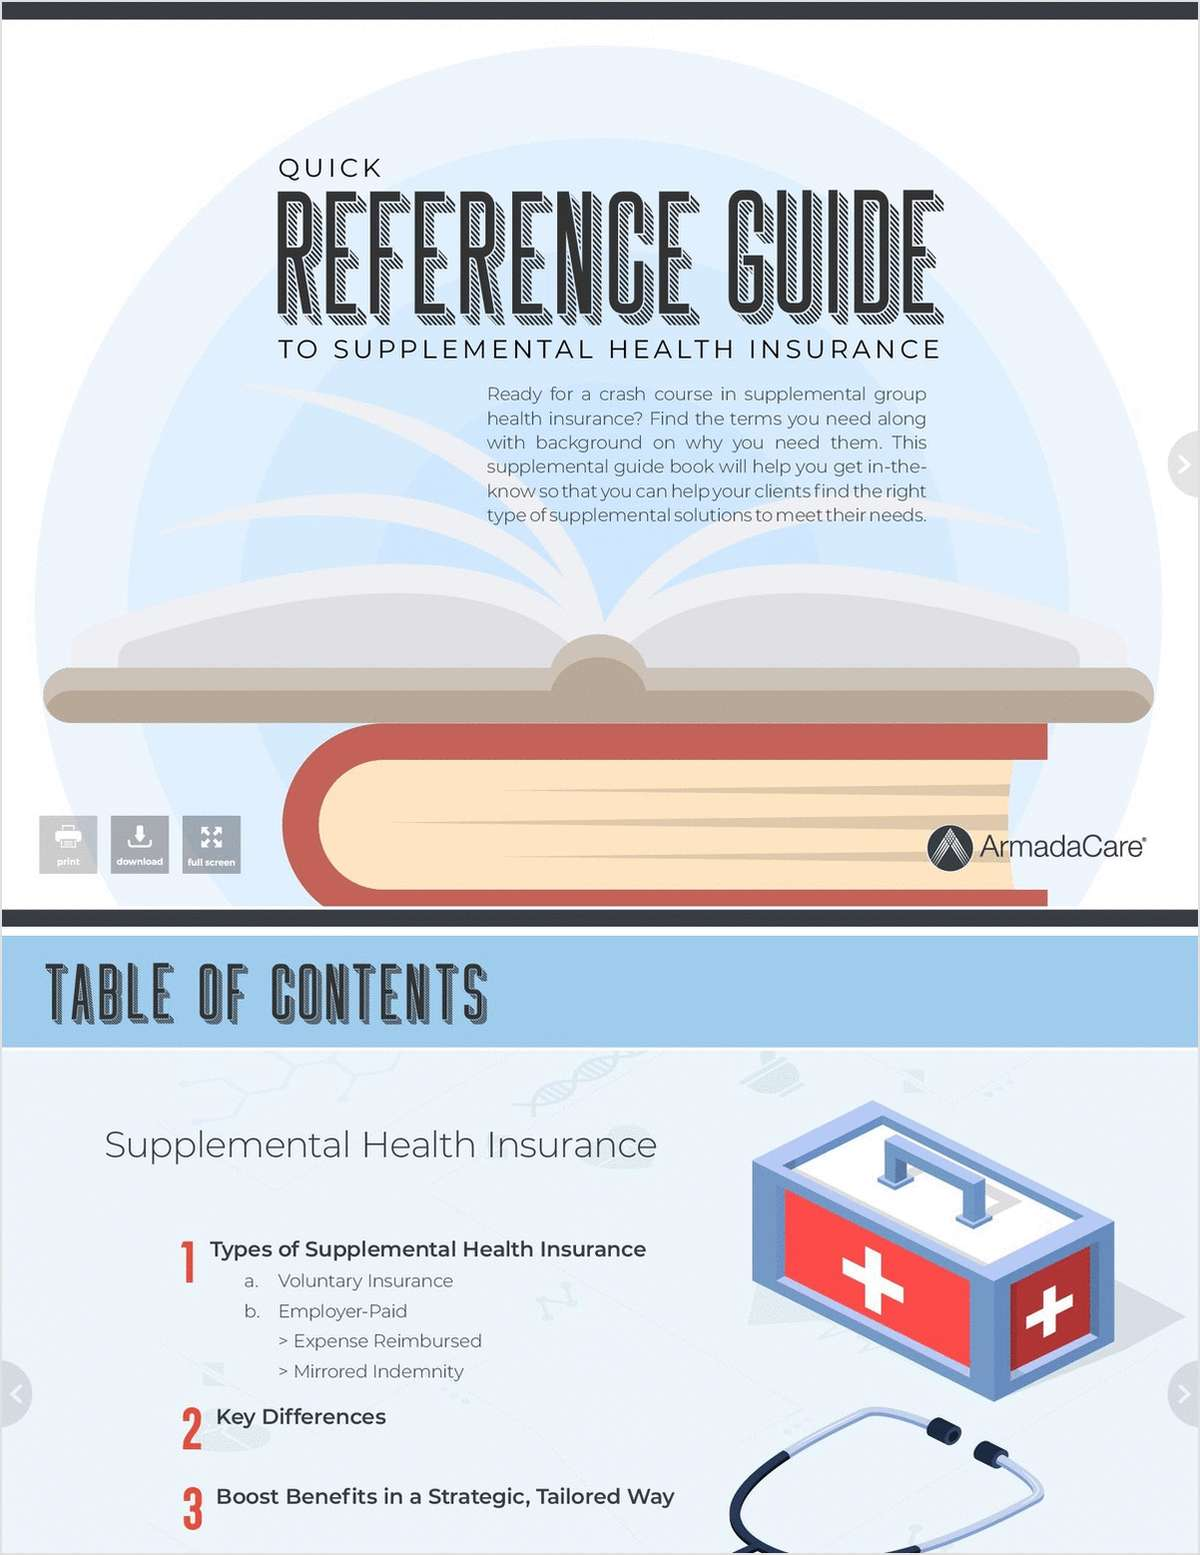 Quick Reference Guide to Supplemental Health Insurance